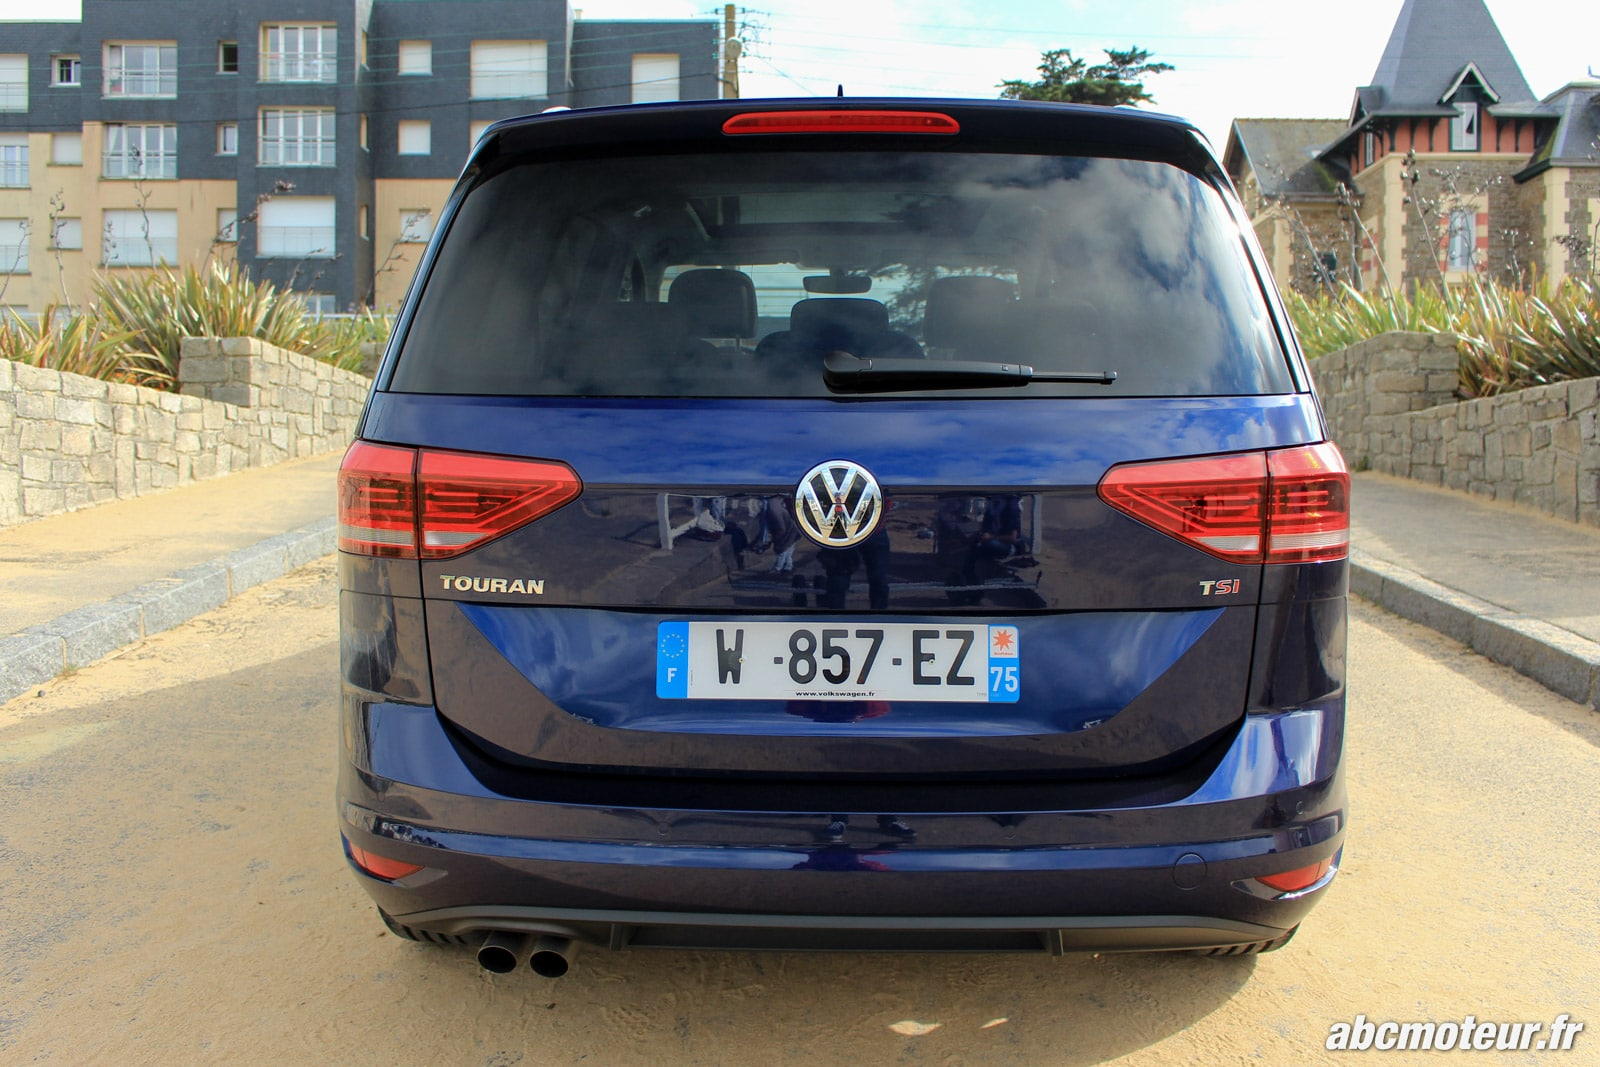 essai volkswagen touran iii tsi 150 dsg7 la pointe. Black Bedroom Furniture Sets. Home Design Ideas